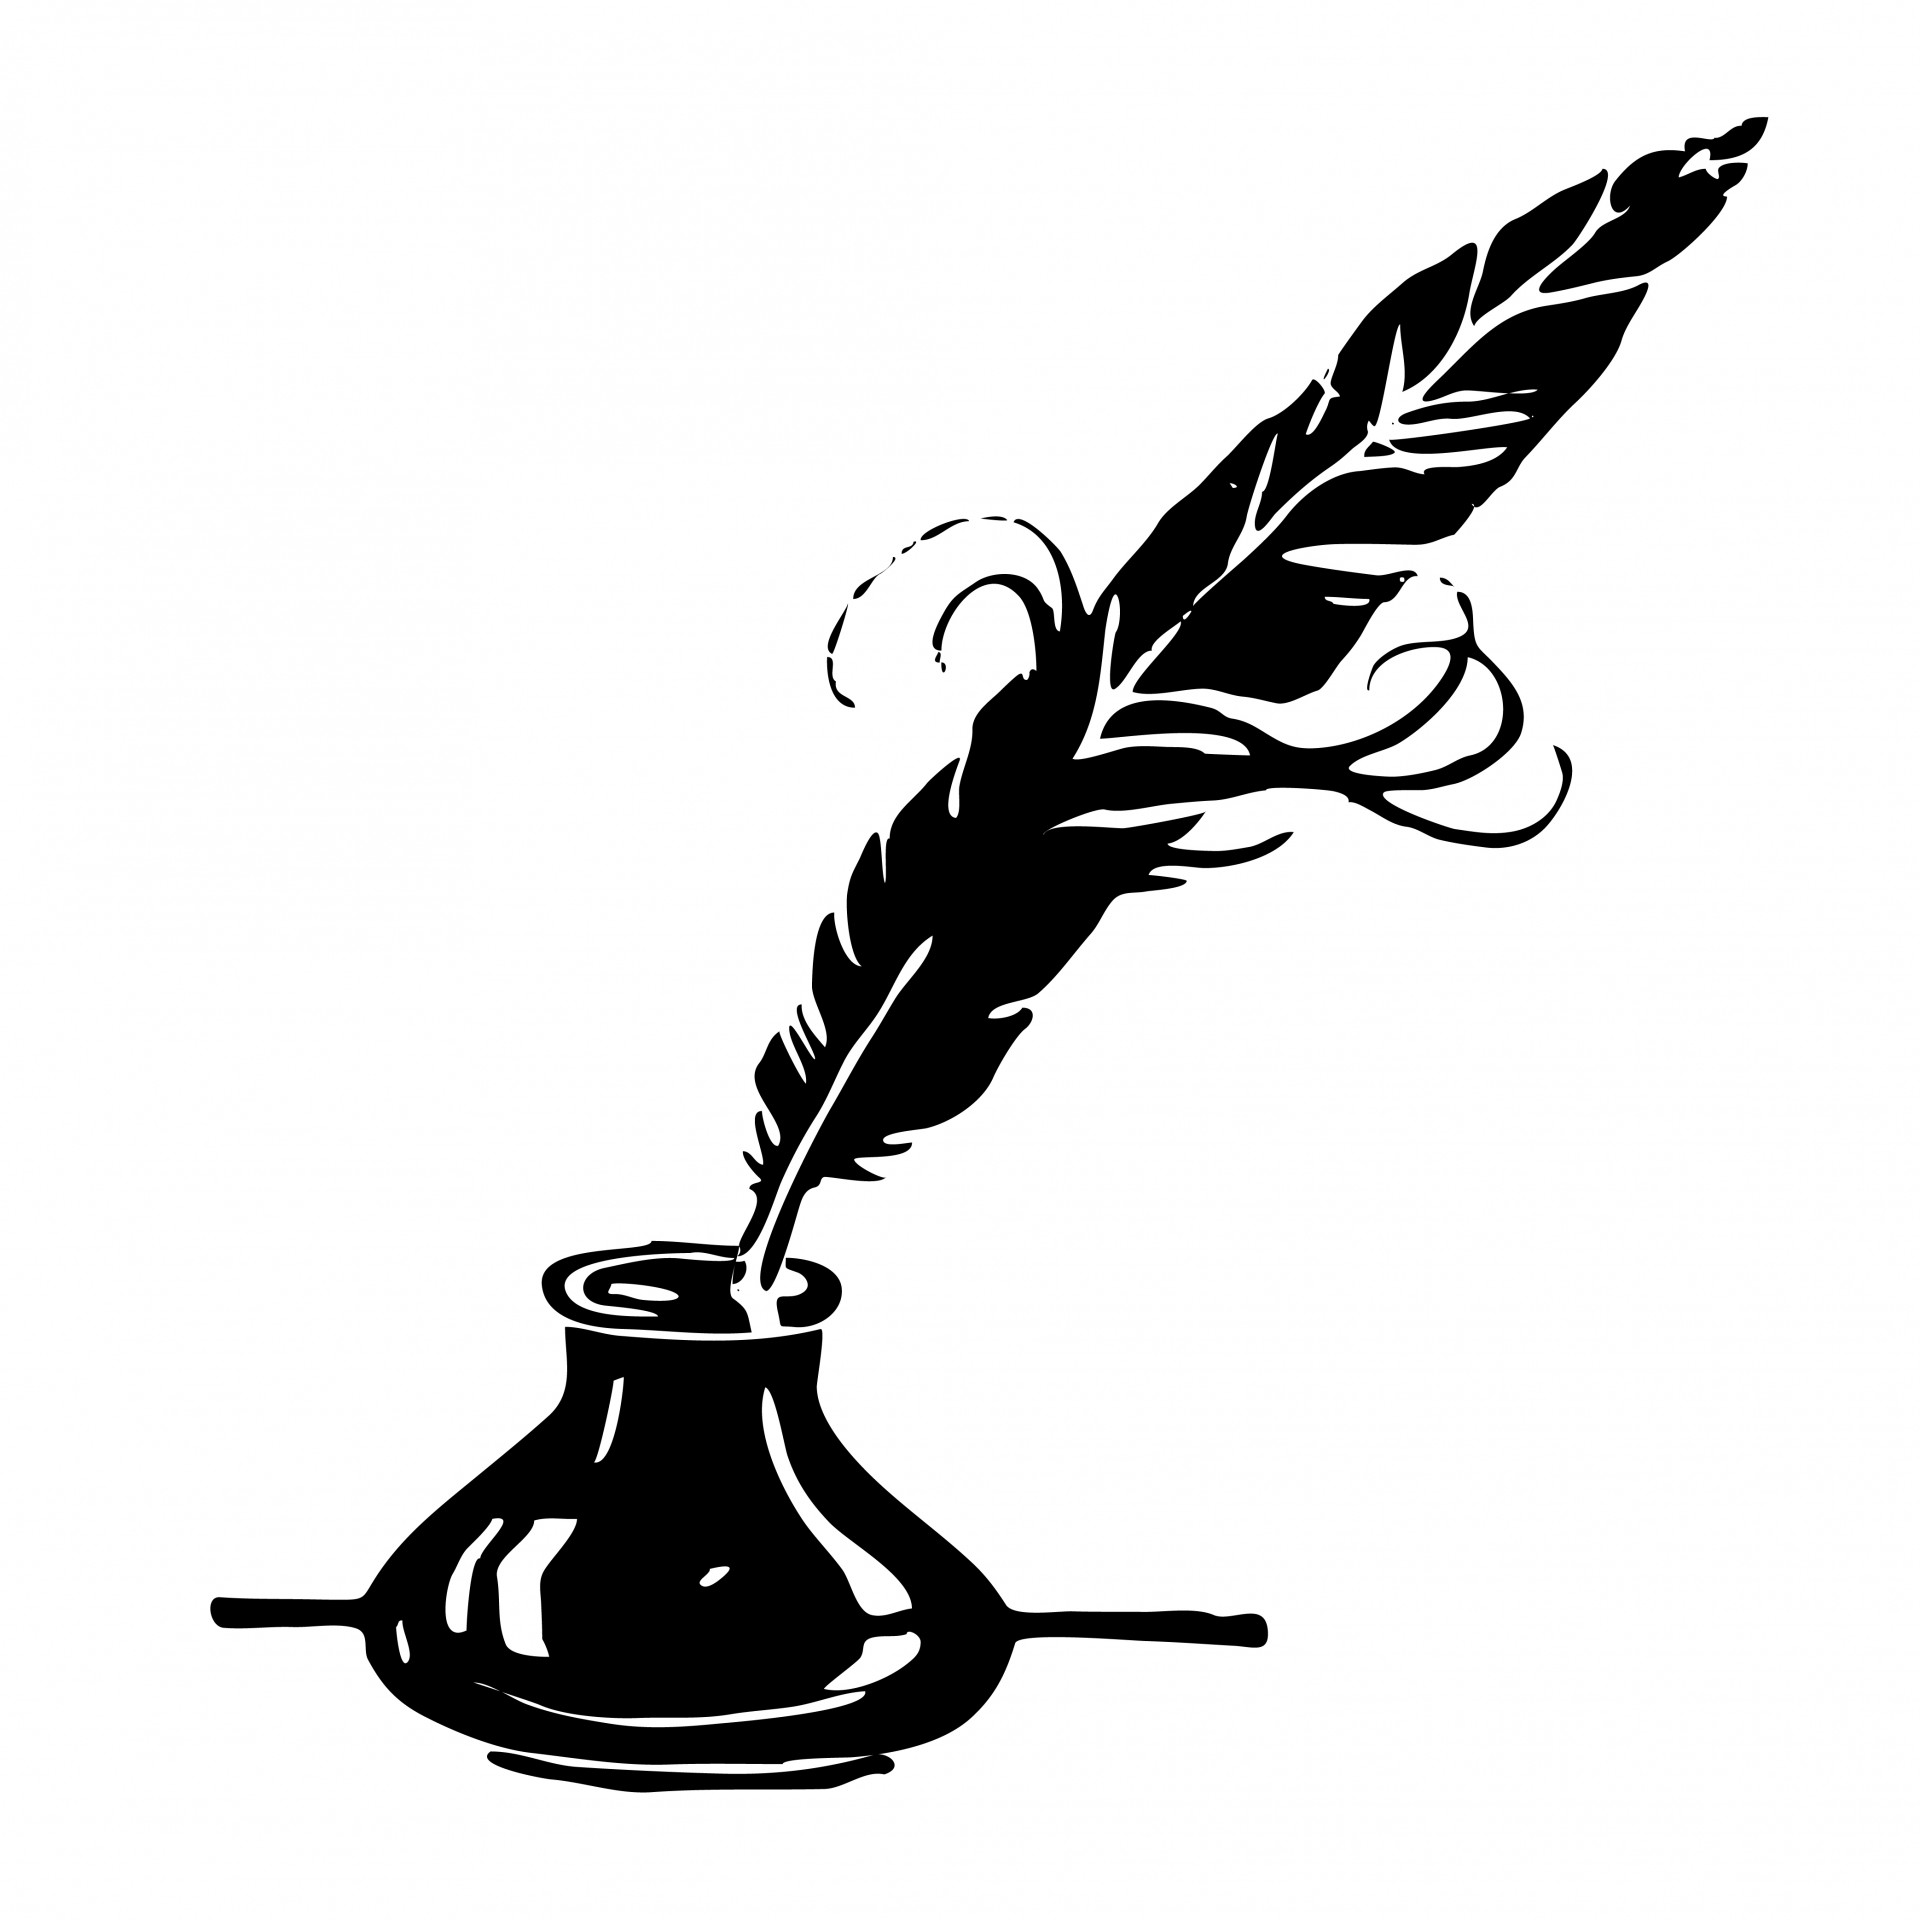 2 clipart feather. Ink quill free stock